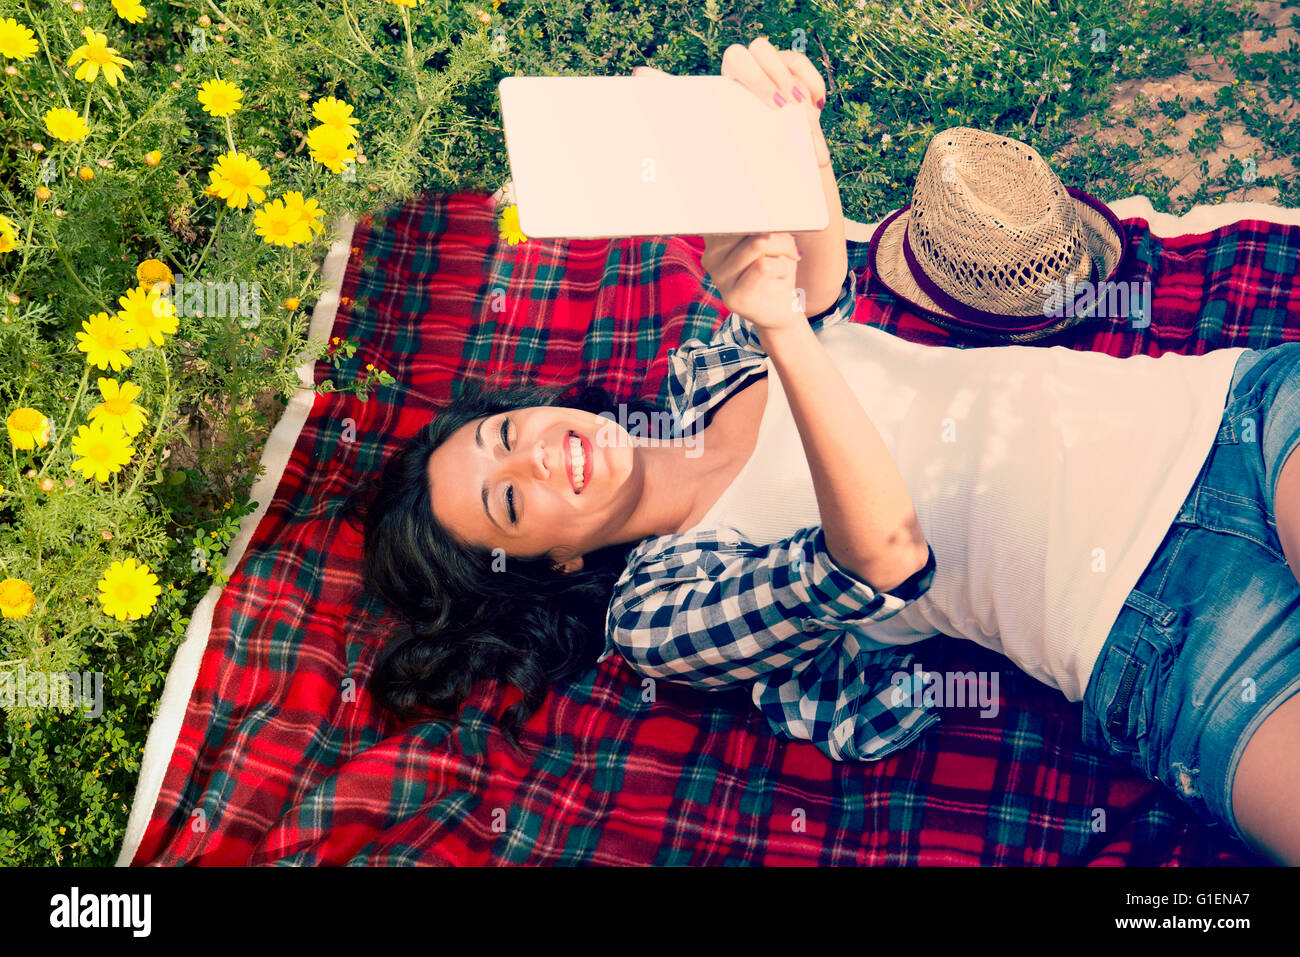 Girl reads a tablet into nature on a blanket - Stock Image